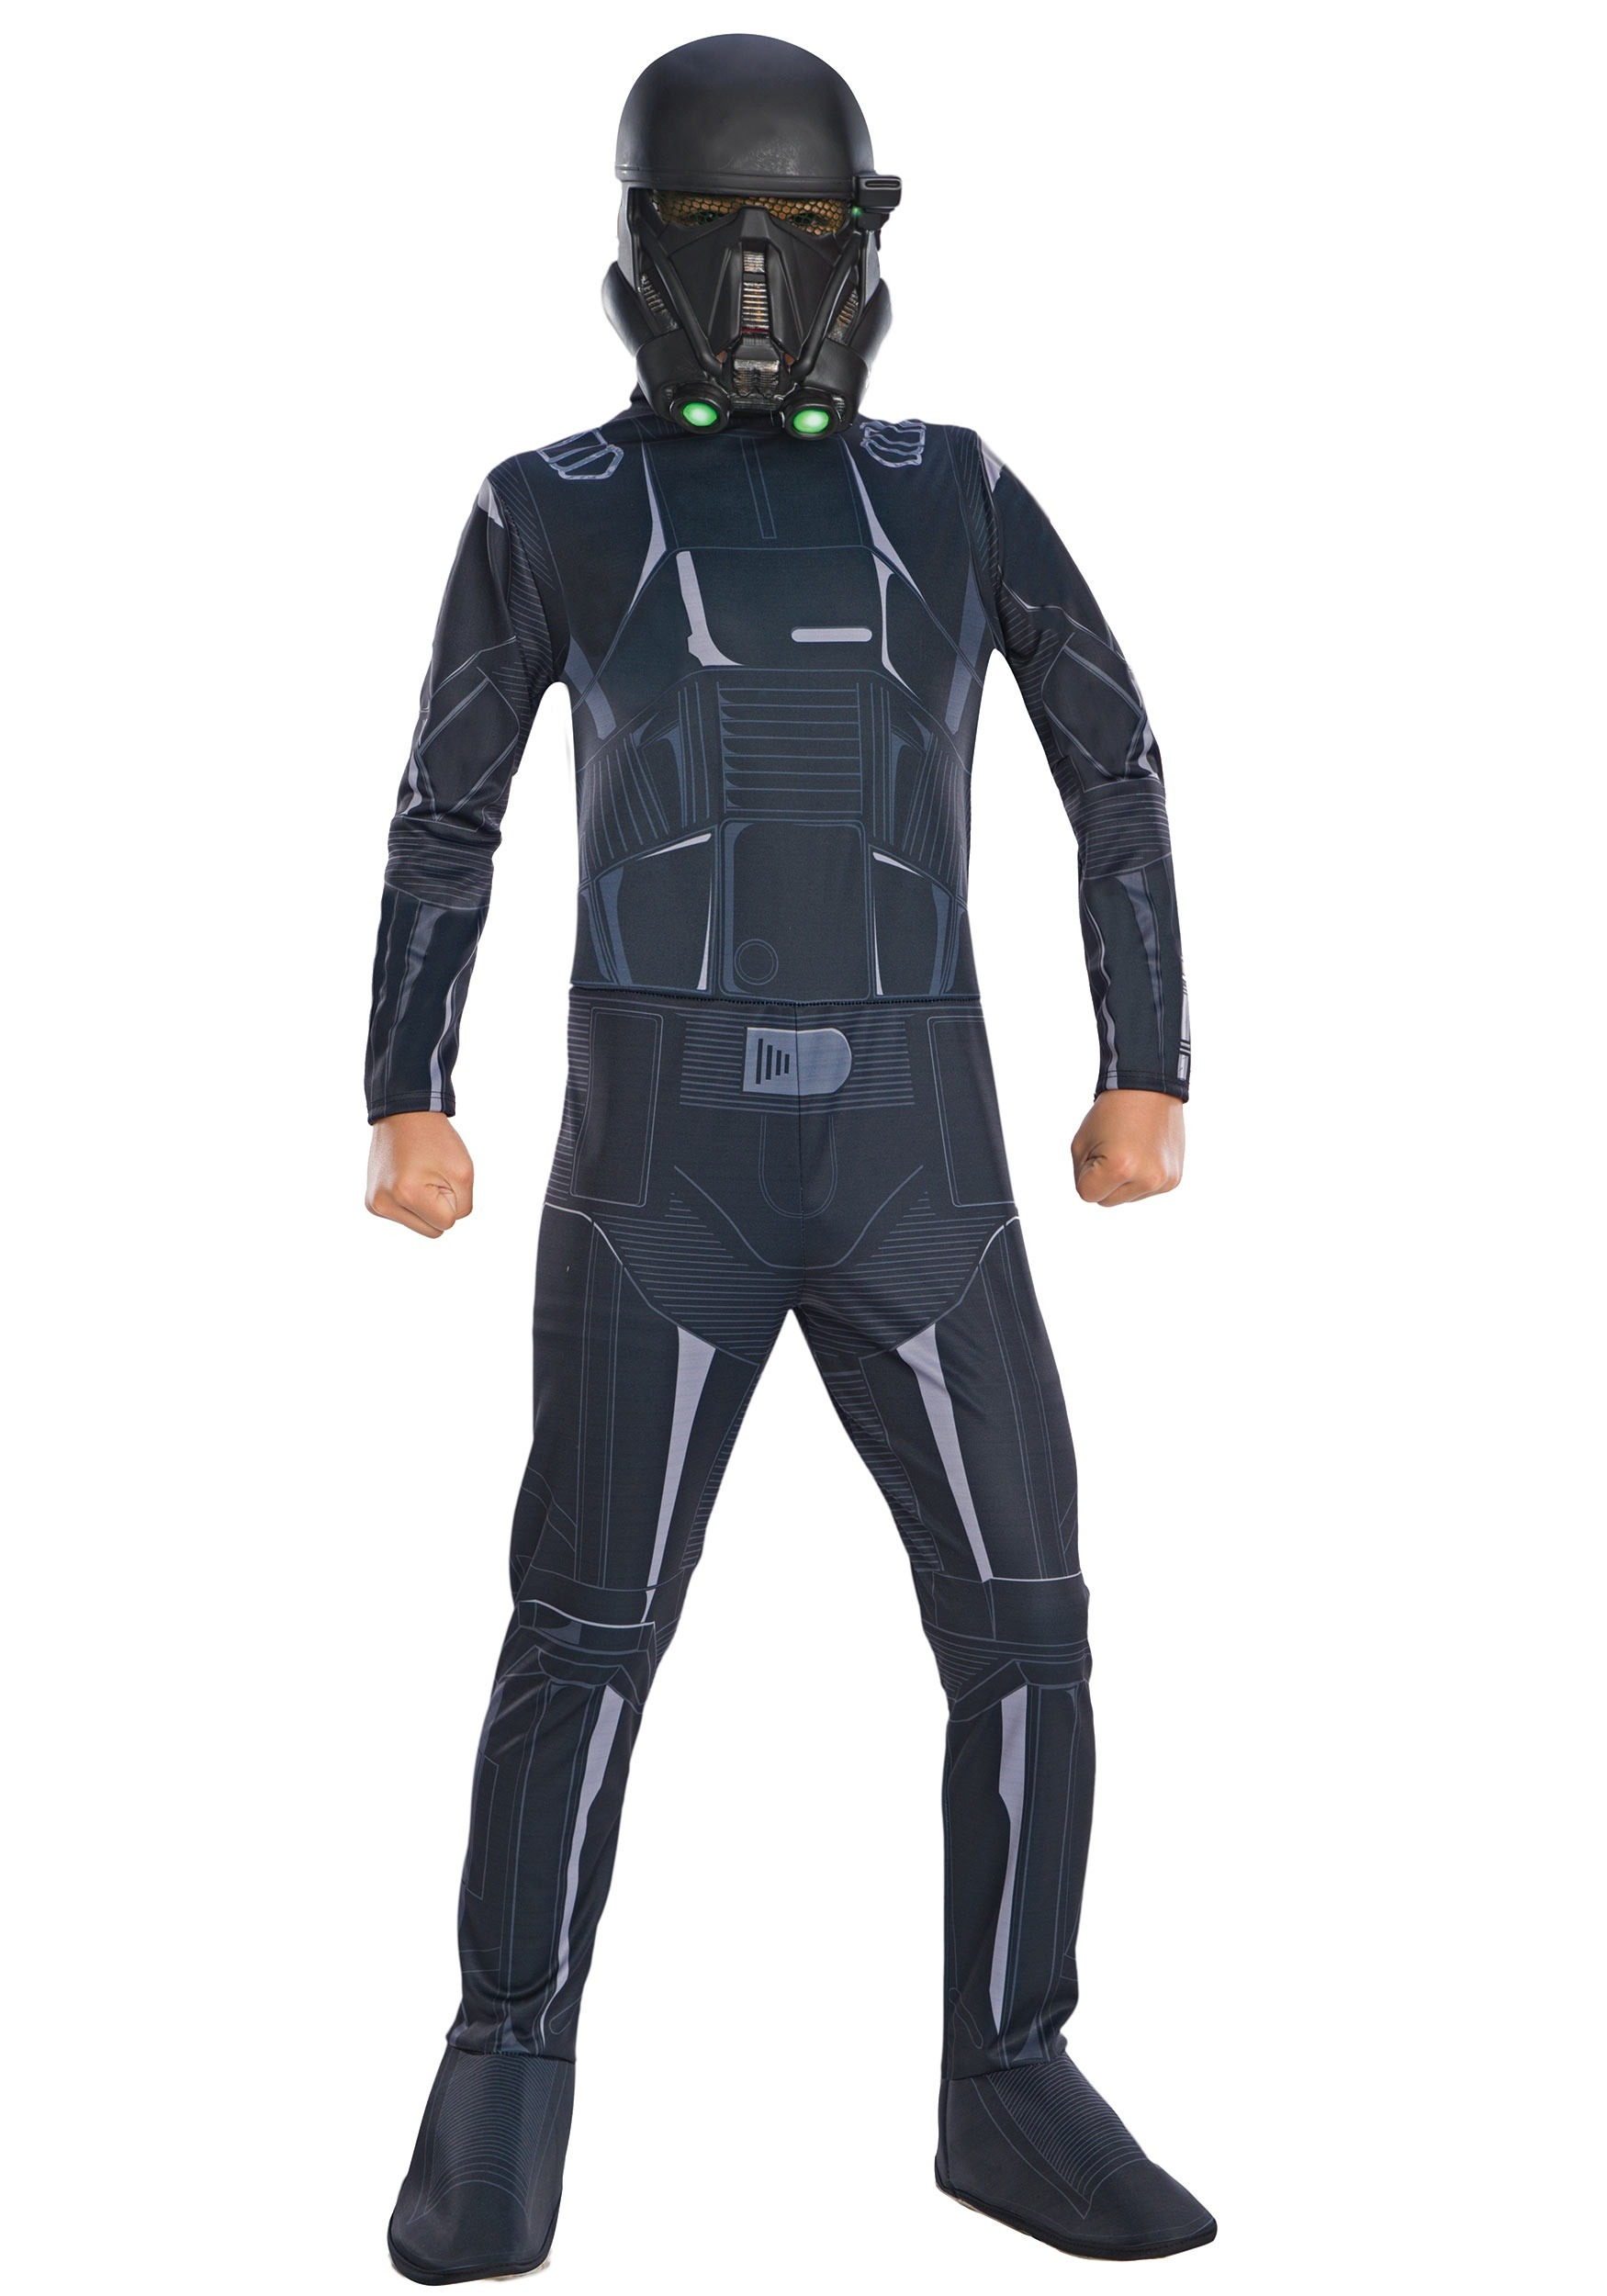 36bda3360b0e Star Wars Rogue One Costumes - HalloweenCostumes.com - Halloween ...